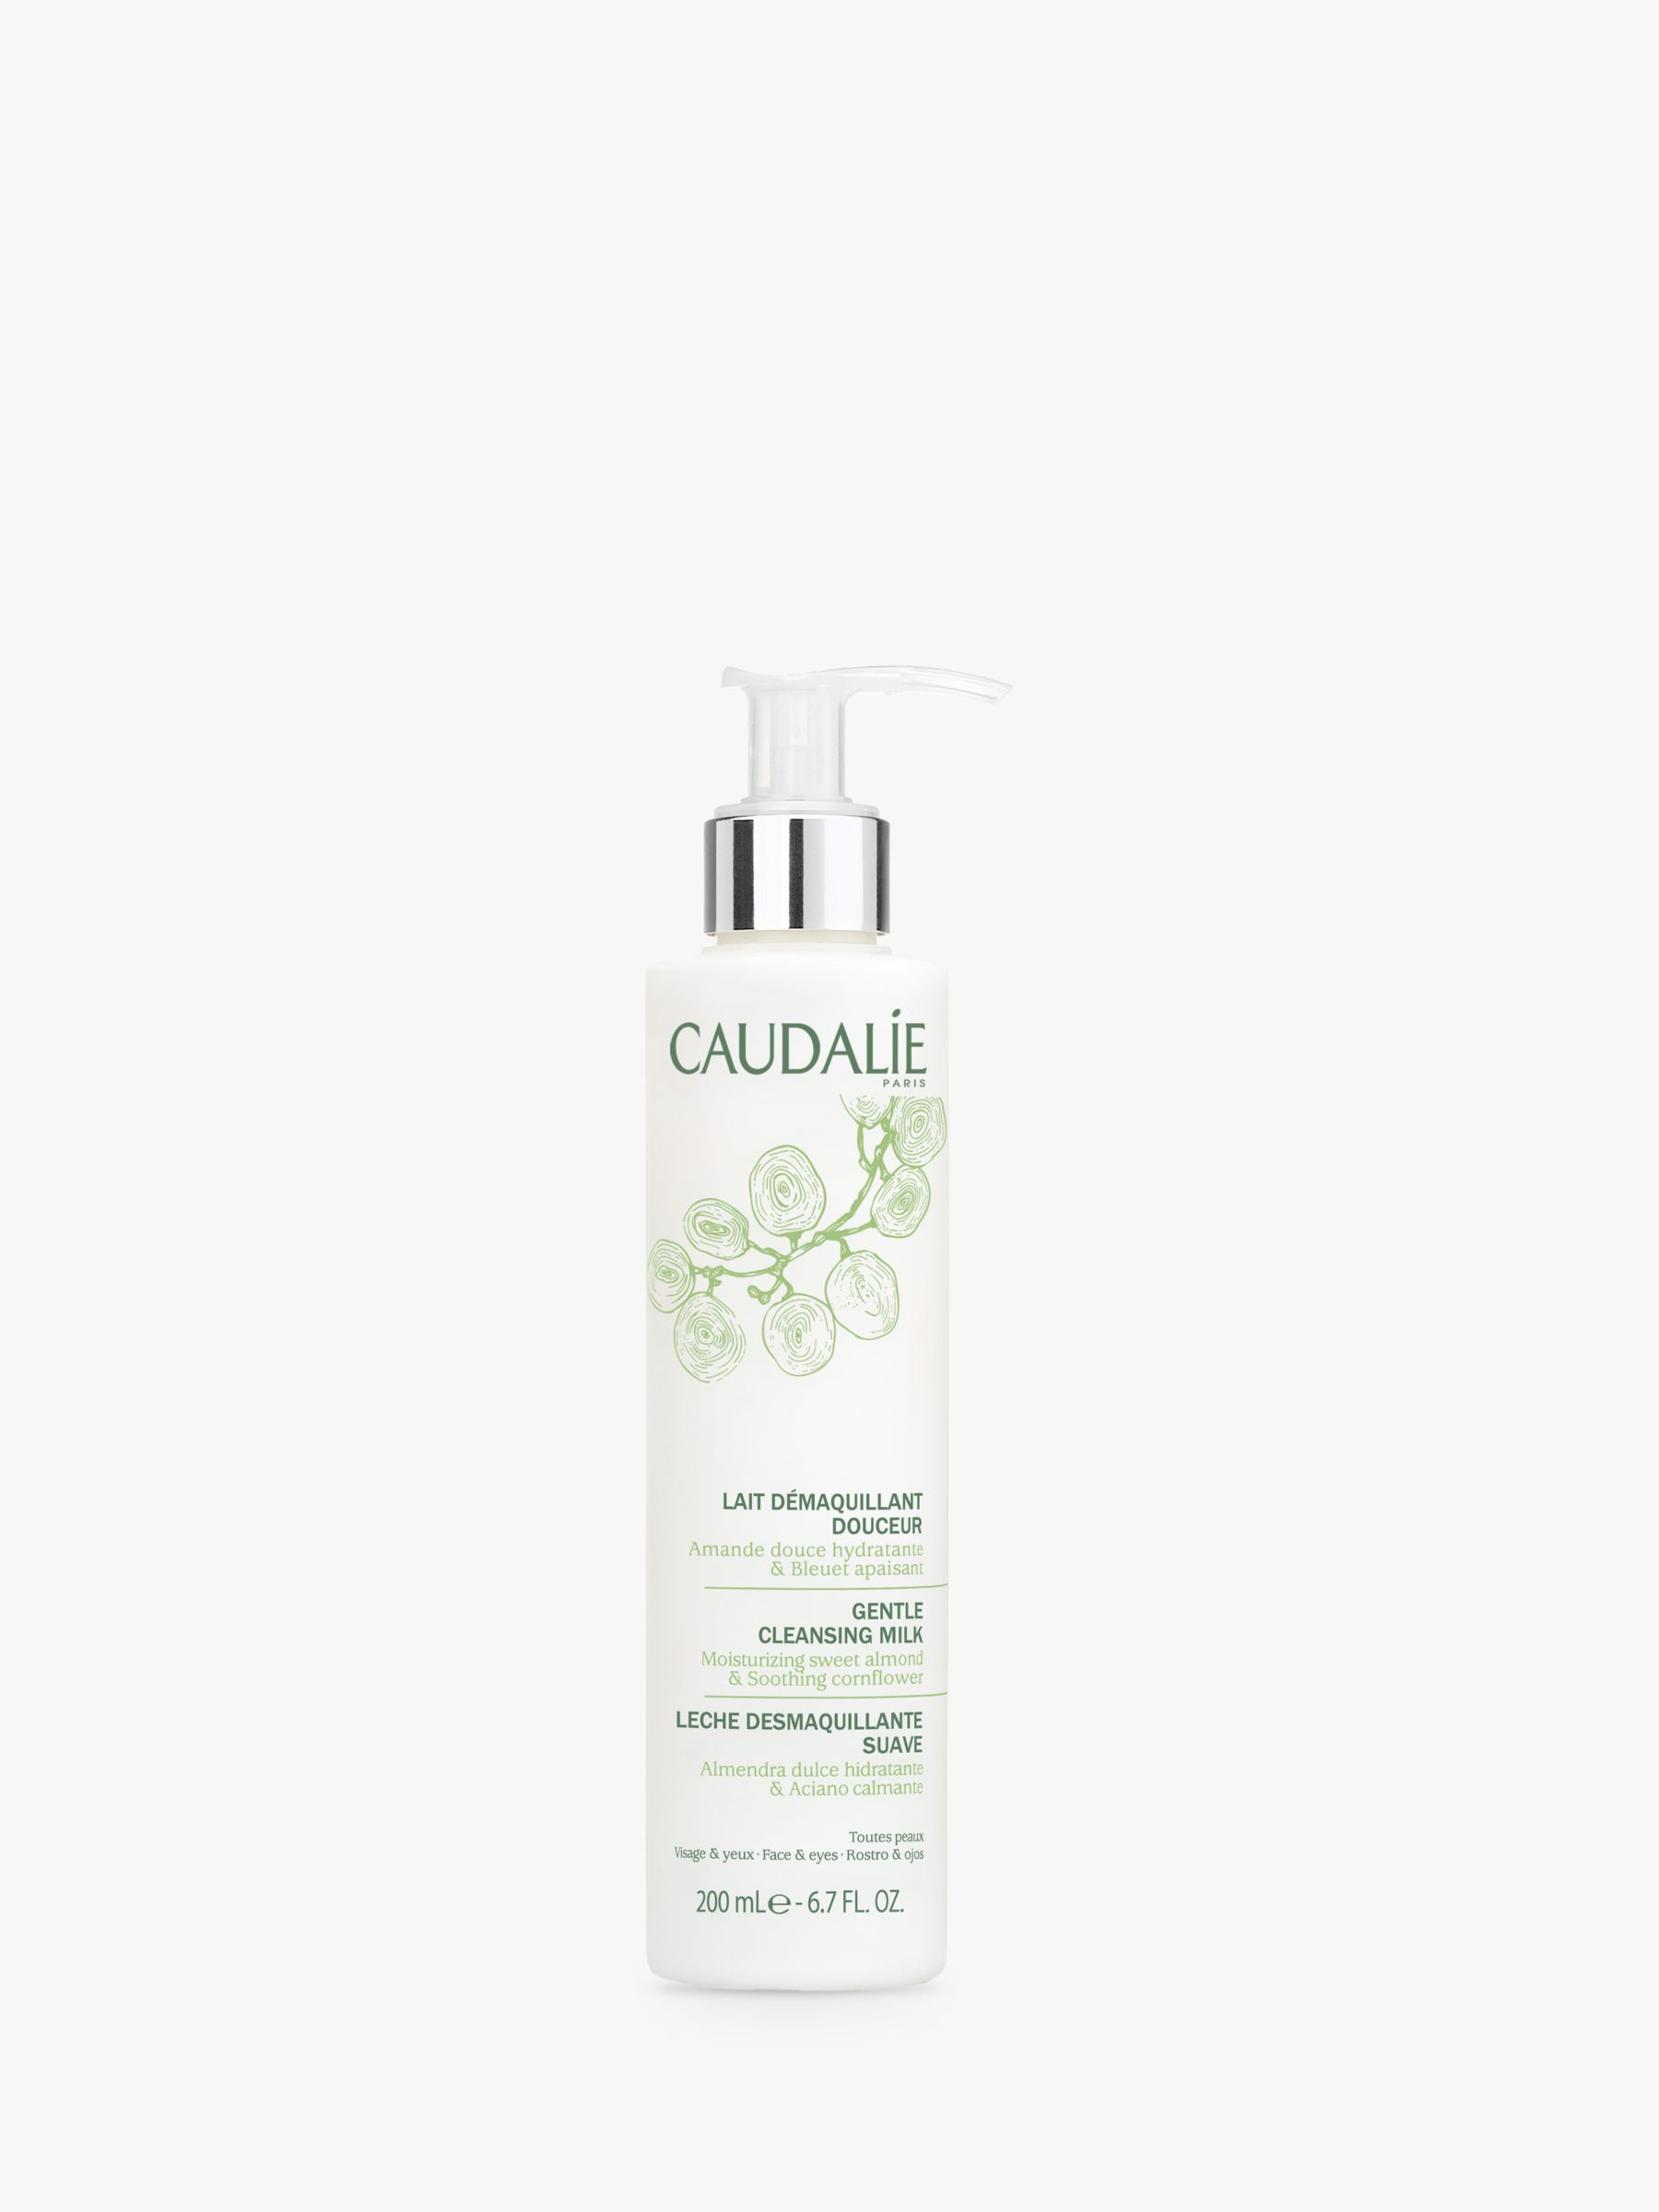 Caudalie Caudalie Gentle Cleansing Milk, 200ml